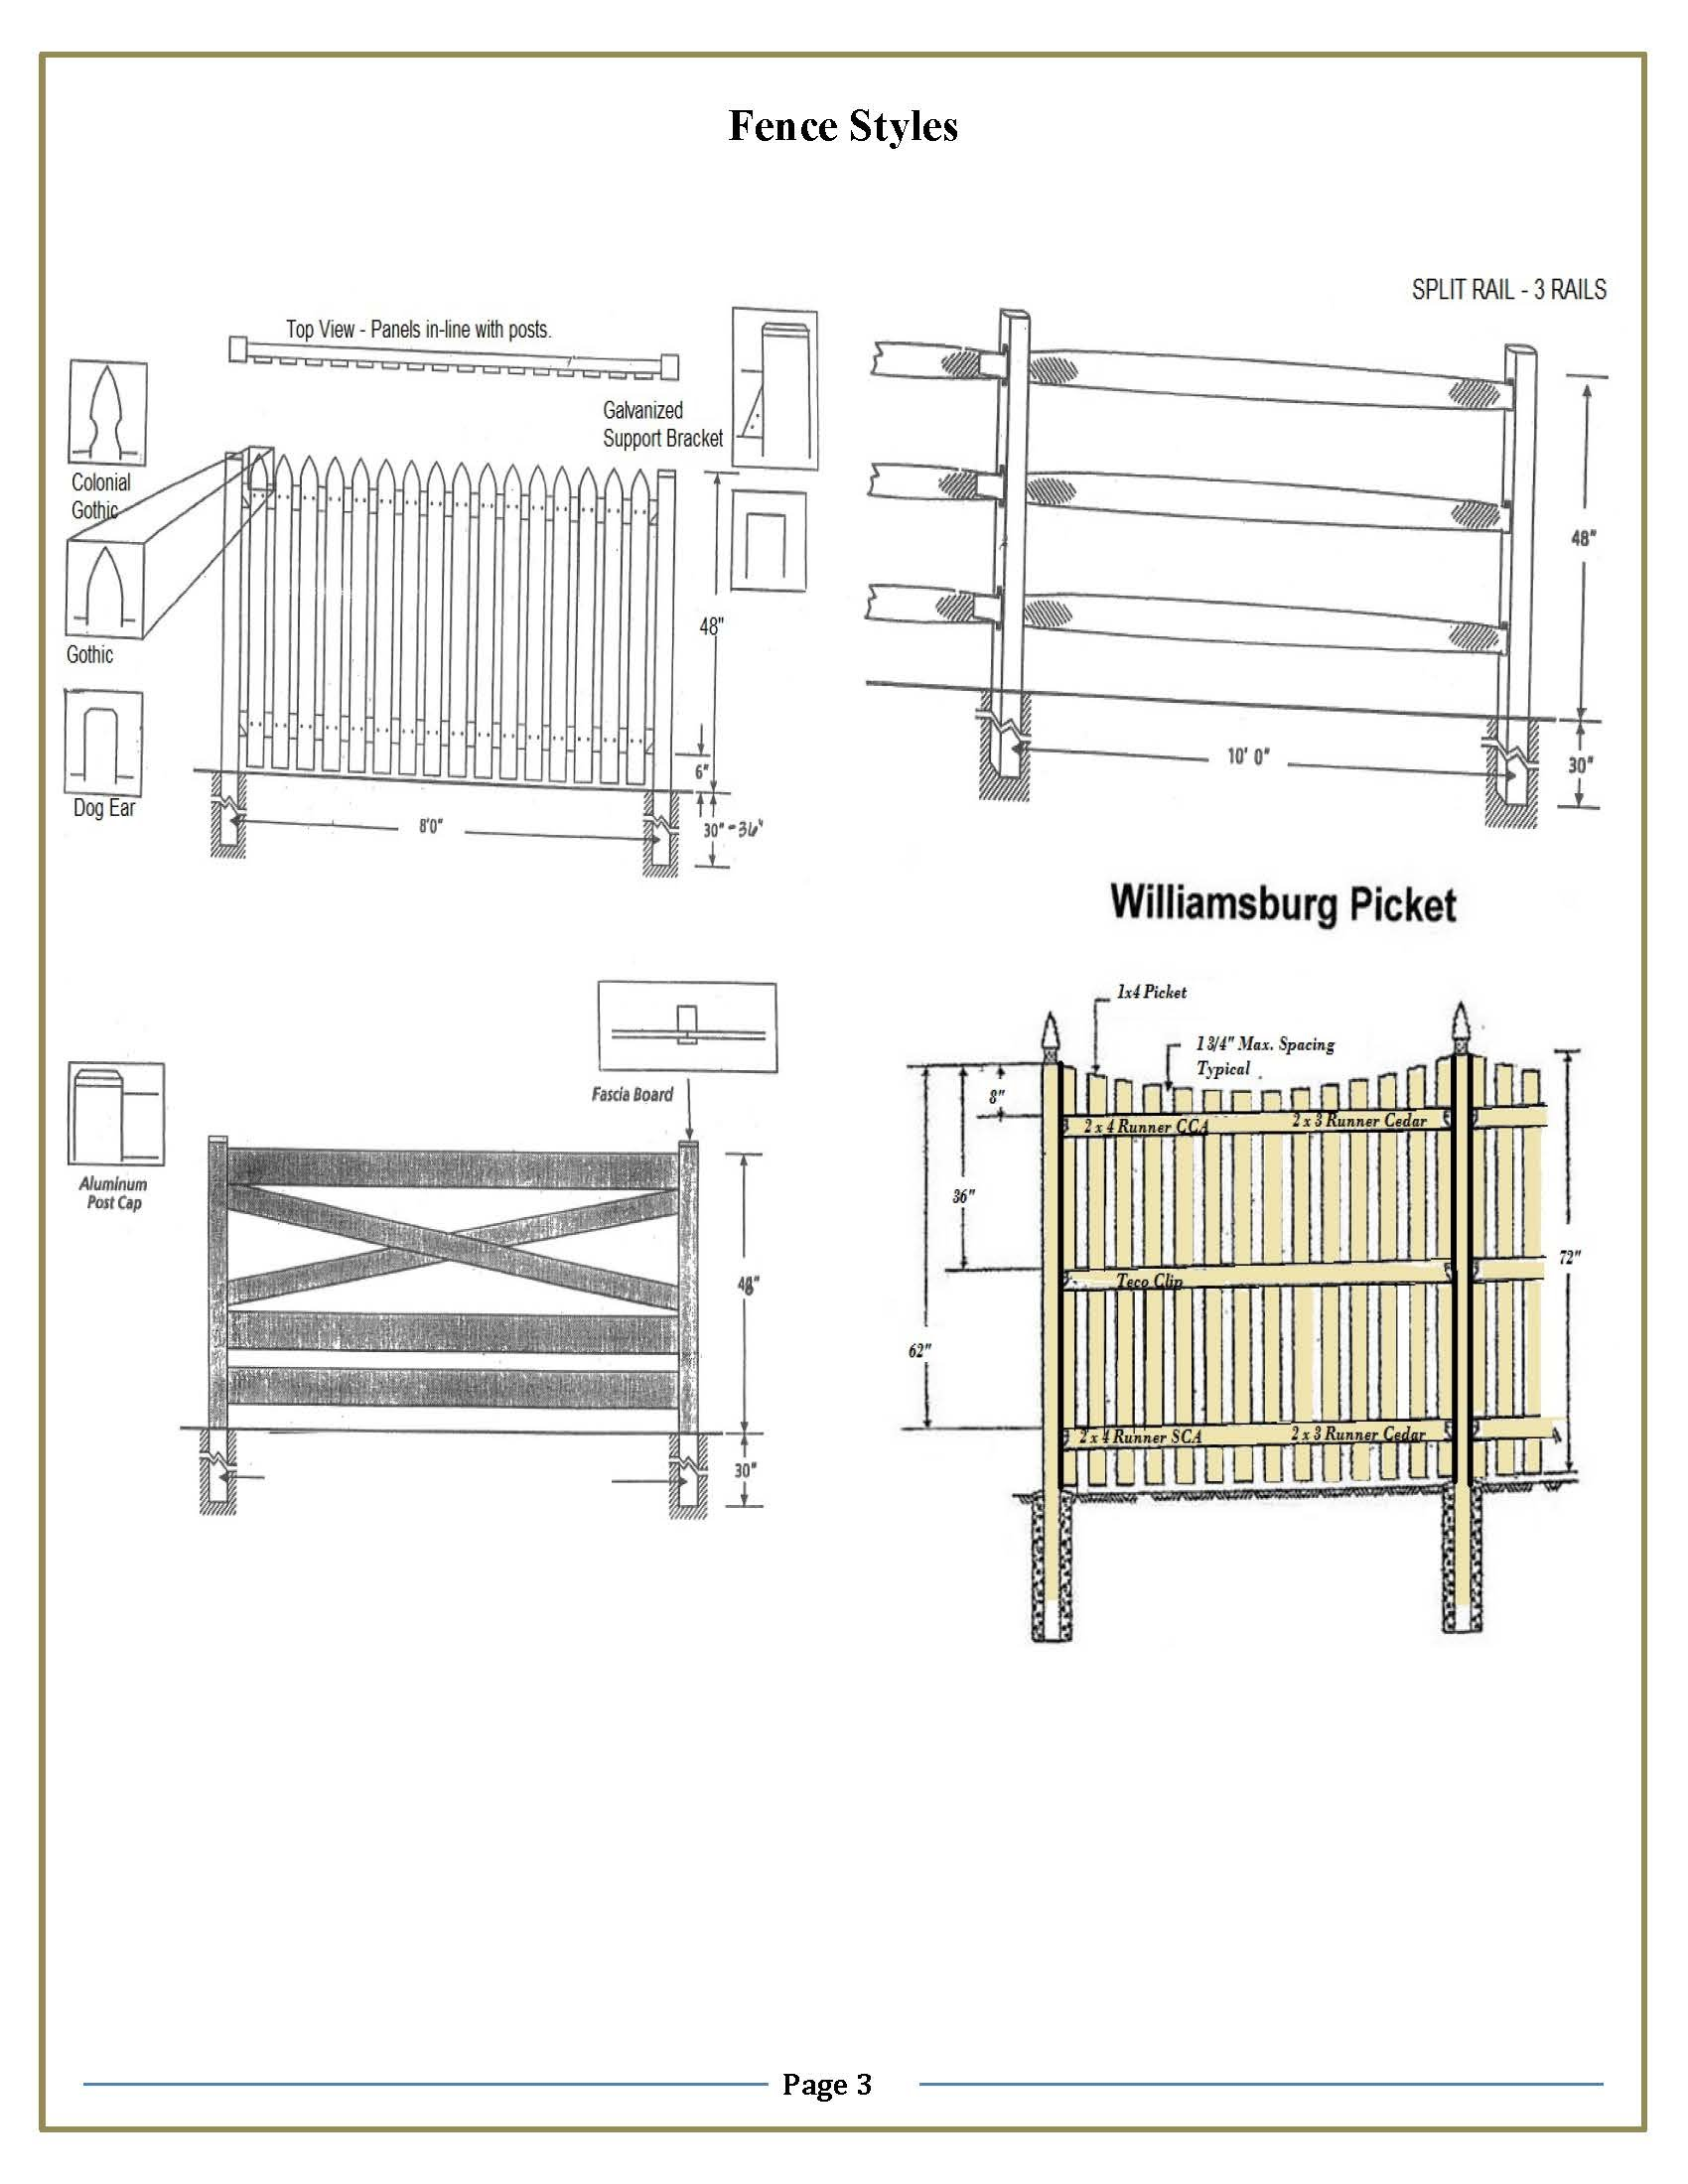 Approved Fence Style 3